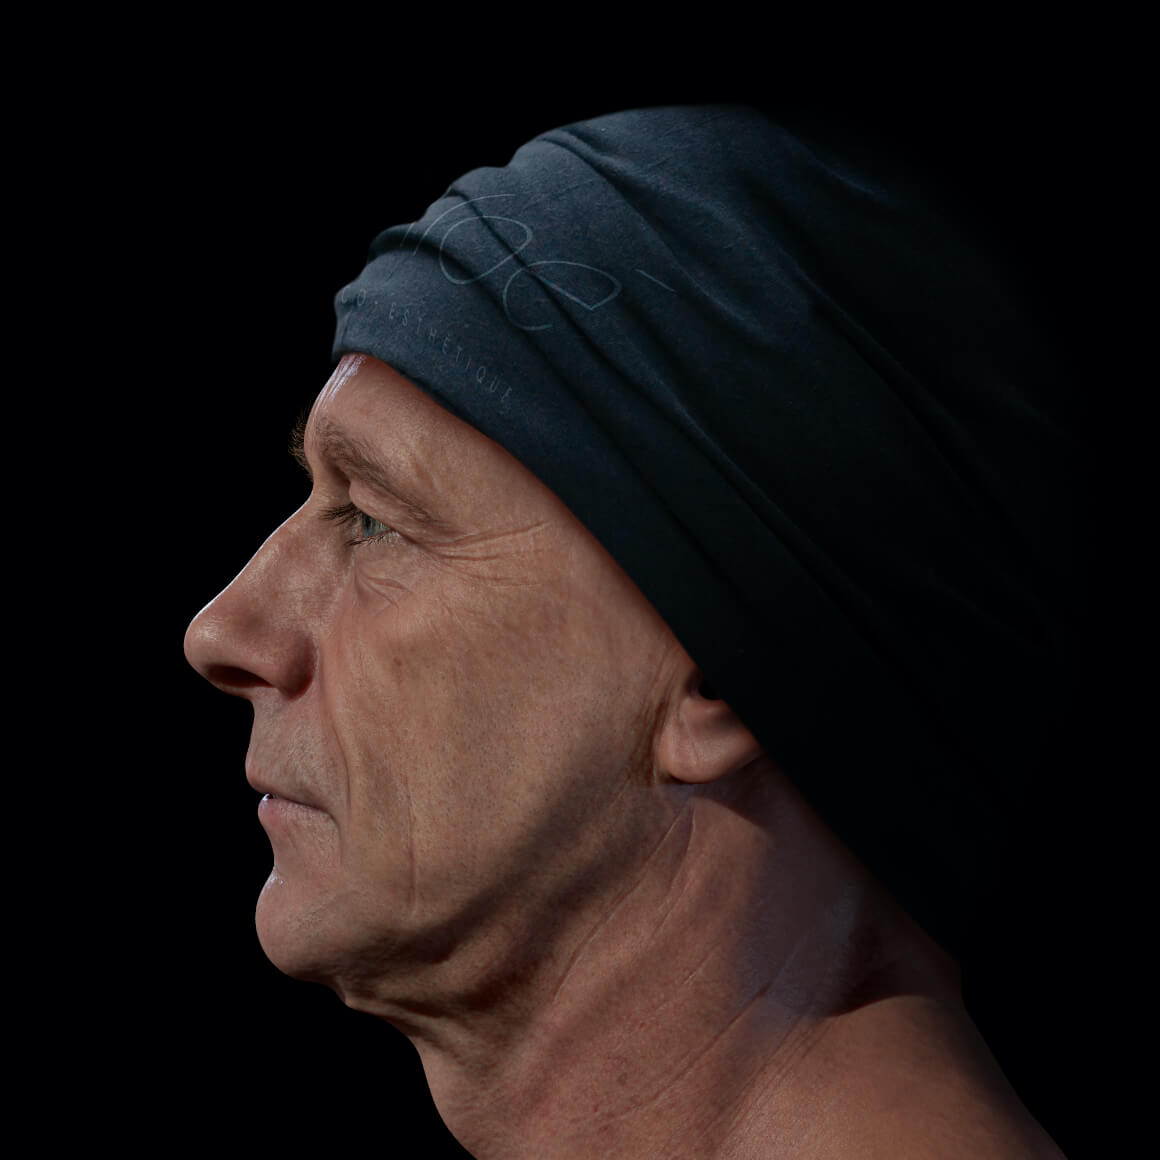 Male patient at Clinique Chloé positioned sideways showing deep wrinkles on his face